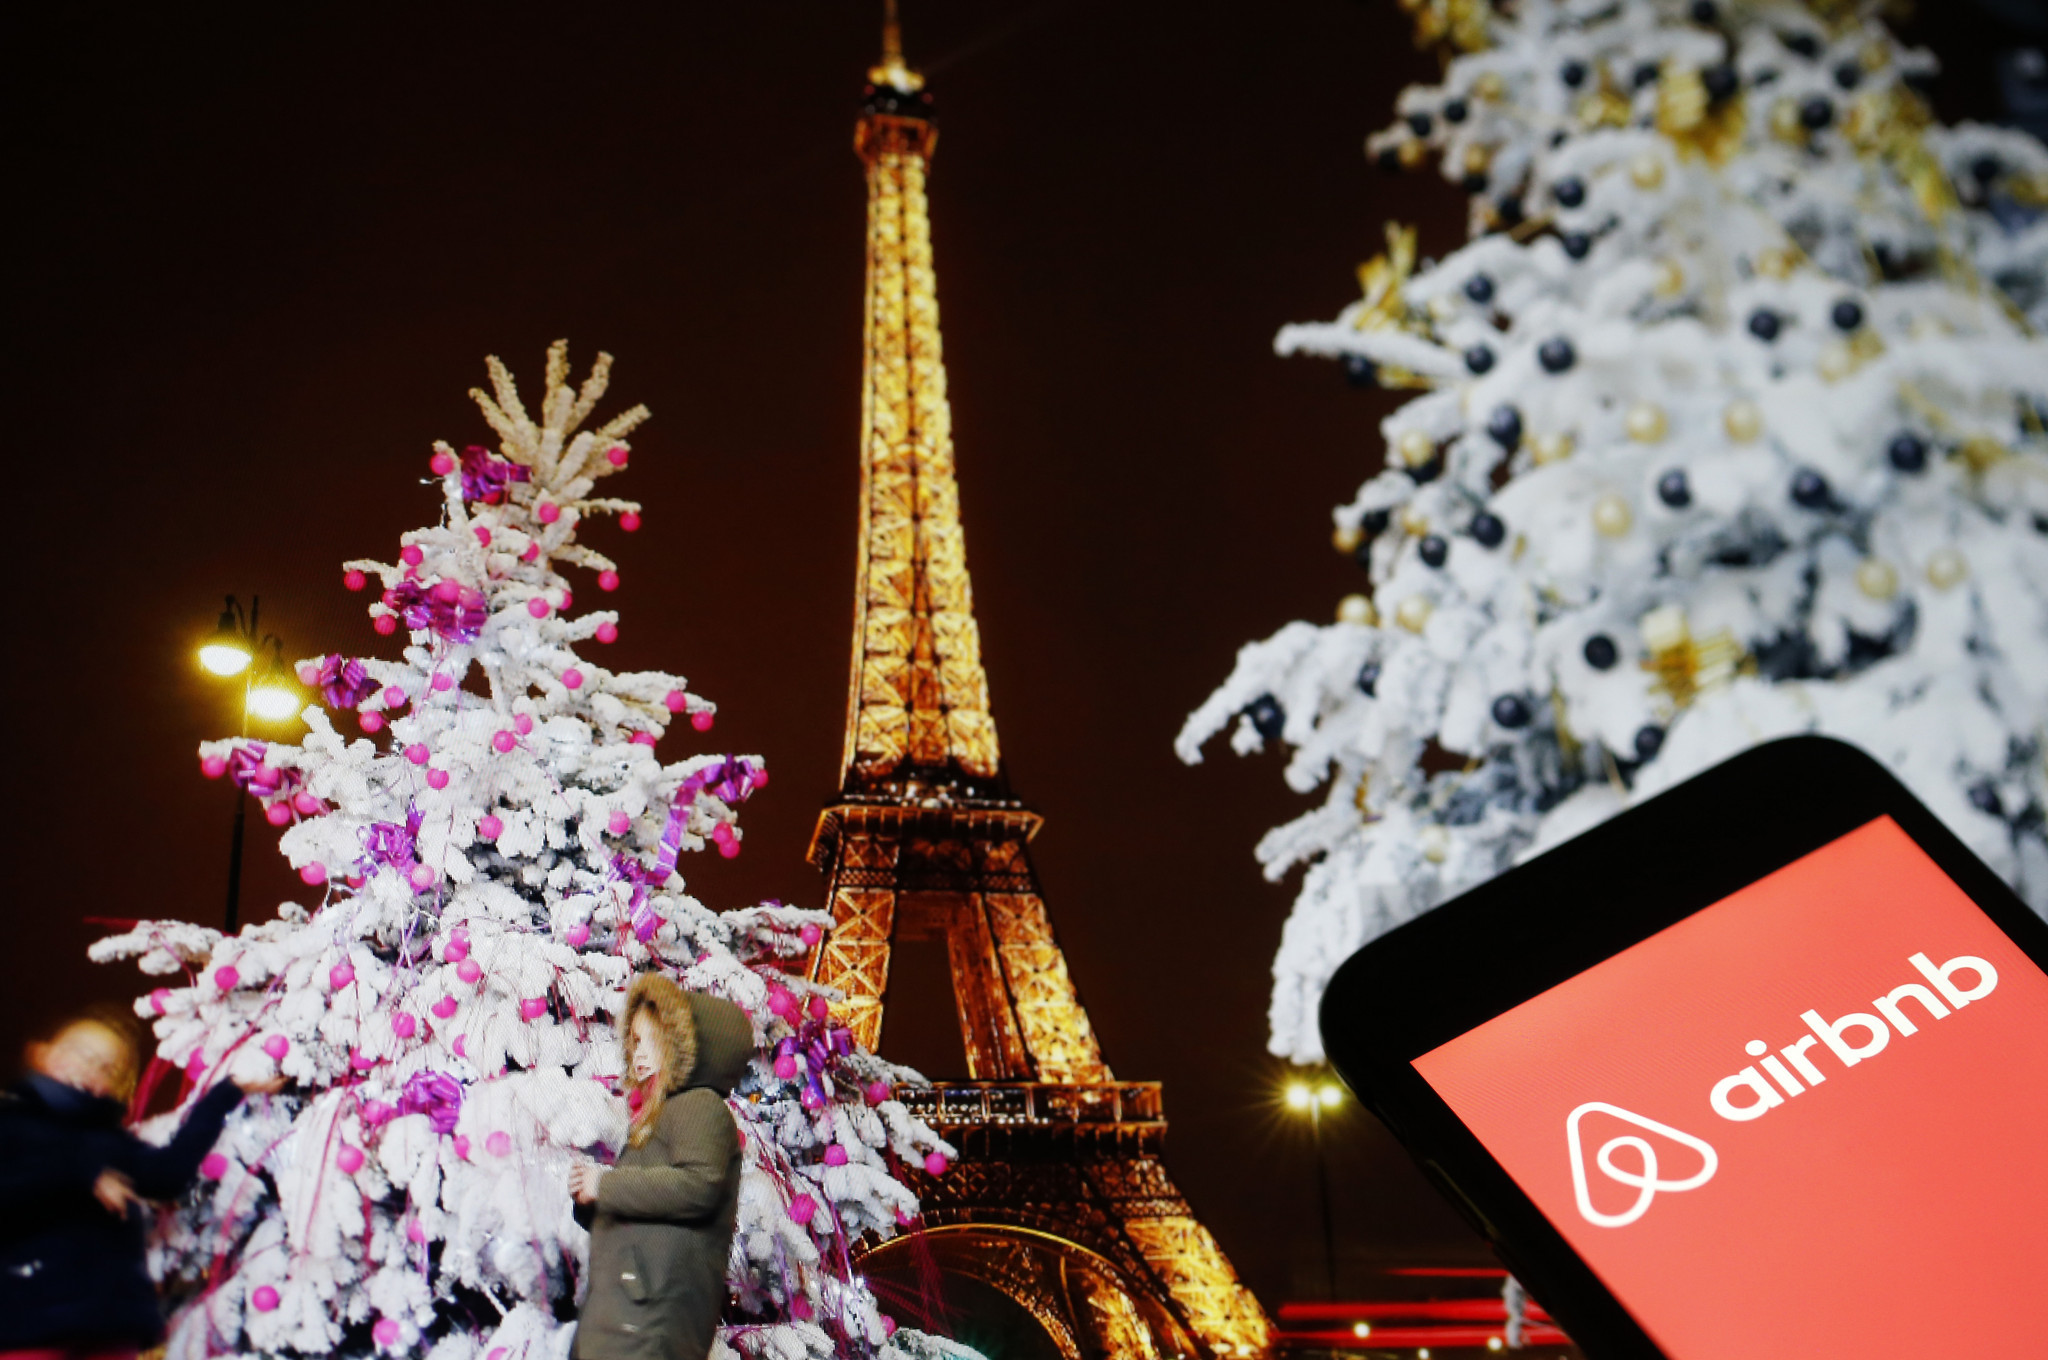 Nothing in Airbnb deal to stop Paris 2024 finding a hotel sponsor, says IOC